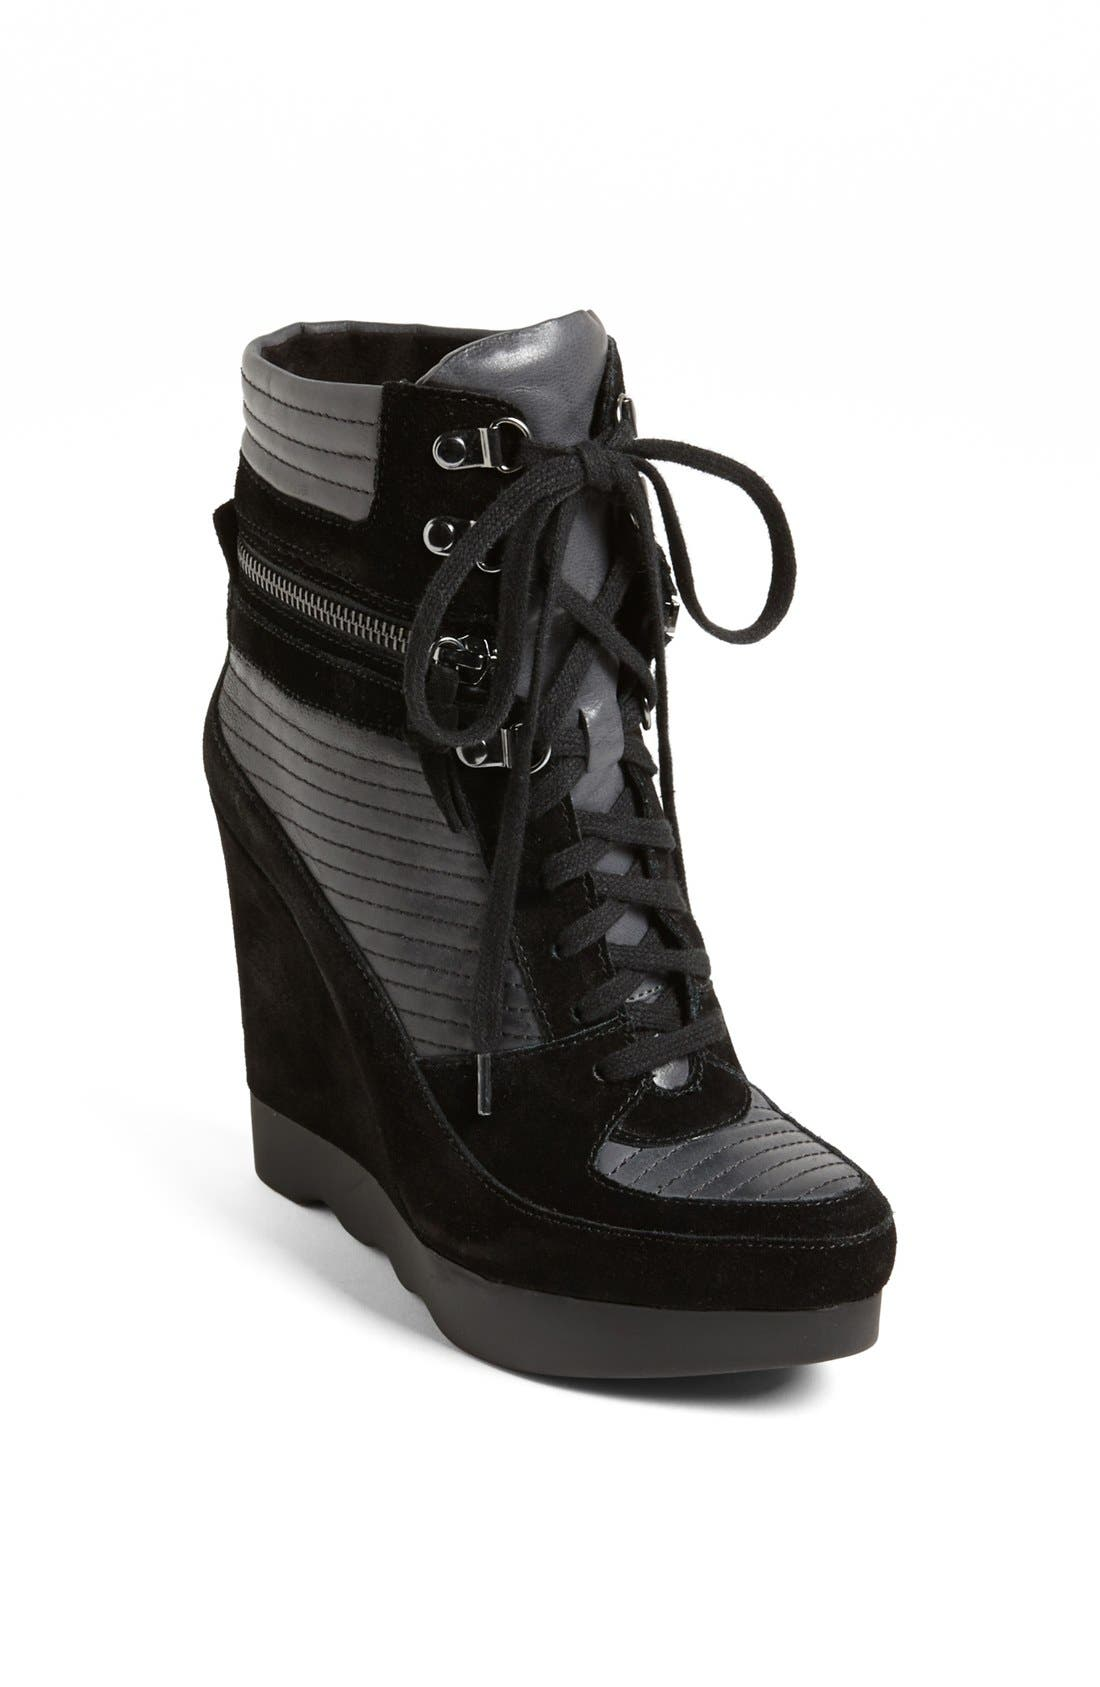 Alternate Image 1 Selected - French Connection 'Maata' Wedge Sneaker